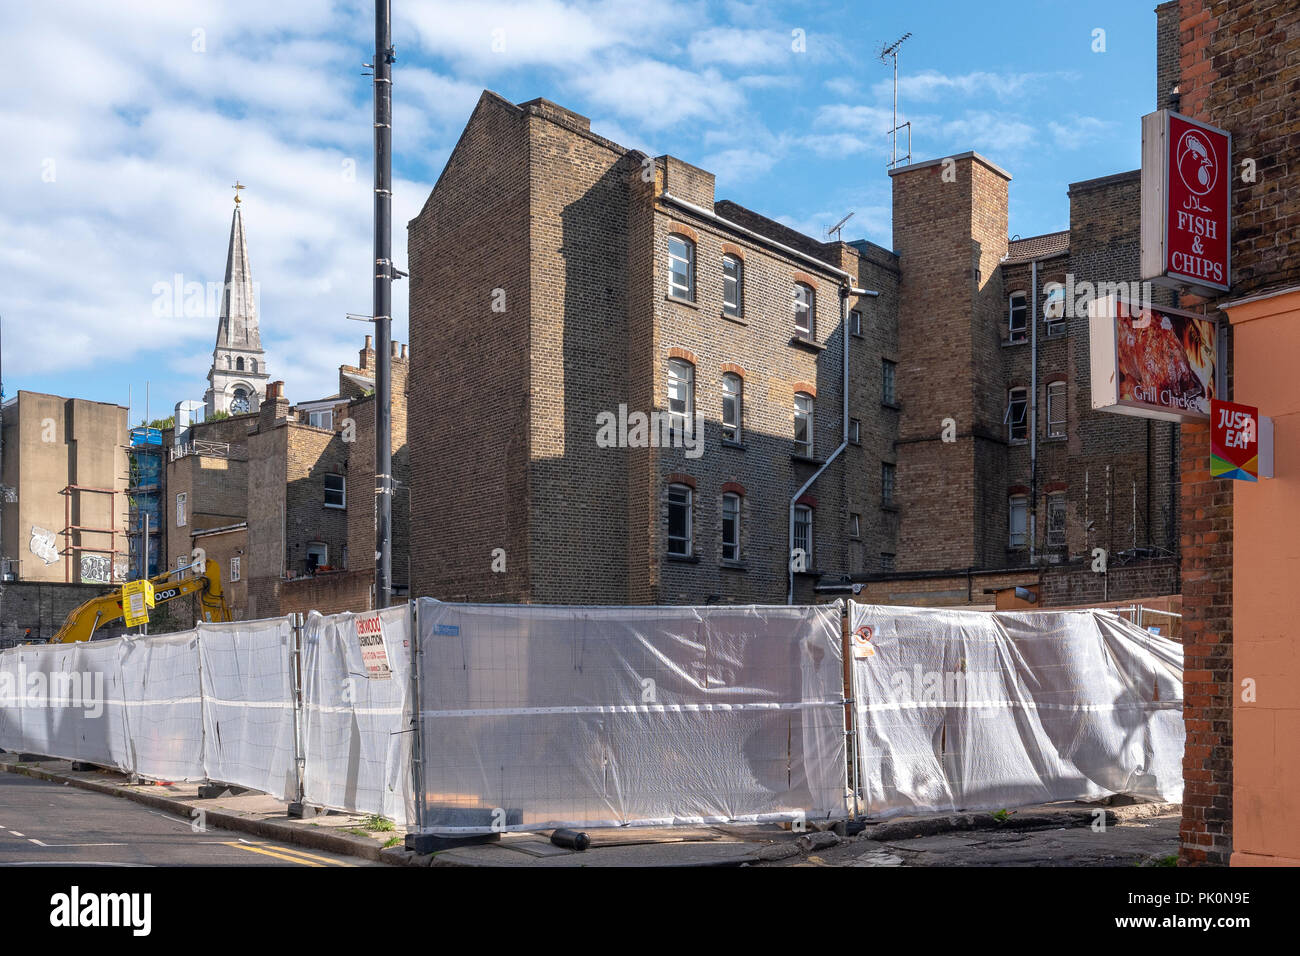 Toynbee Street, near Petticoat Lane (Wentworth Street) London, demolition of old buildings to make way for a new housing development in the East End. - Stock Image